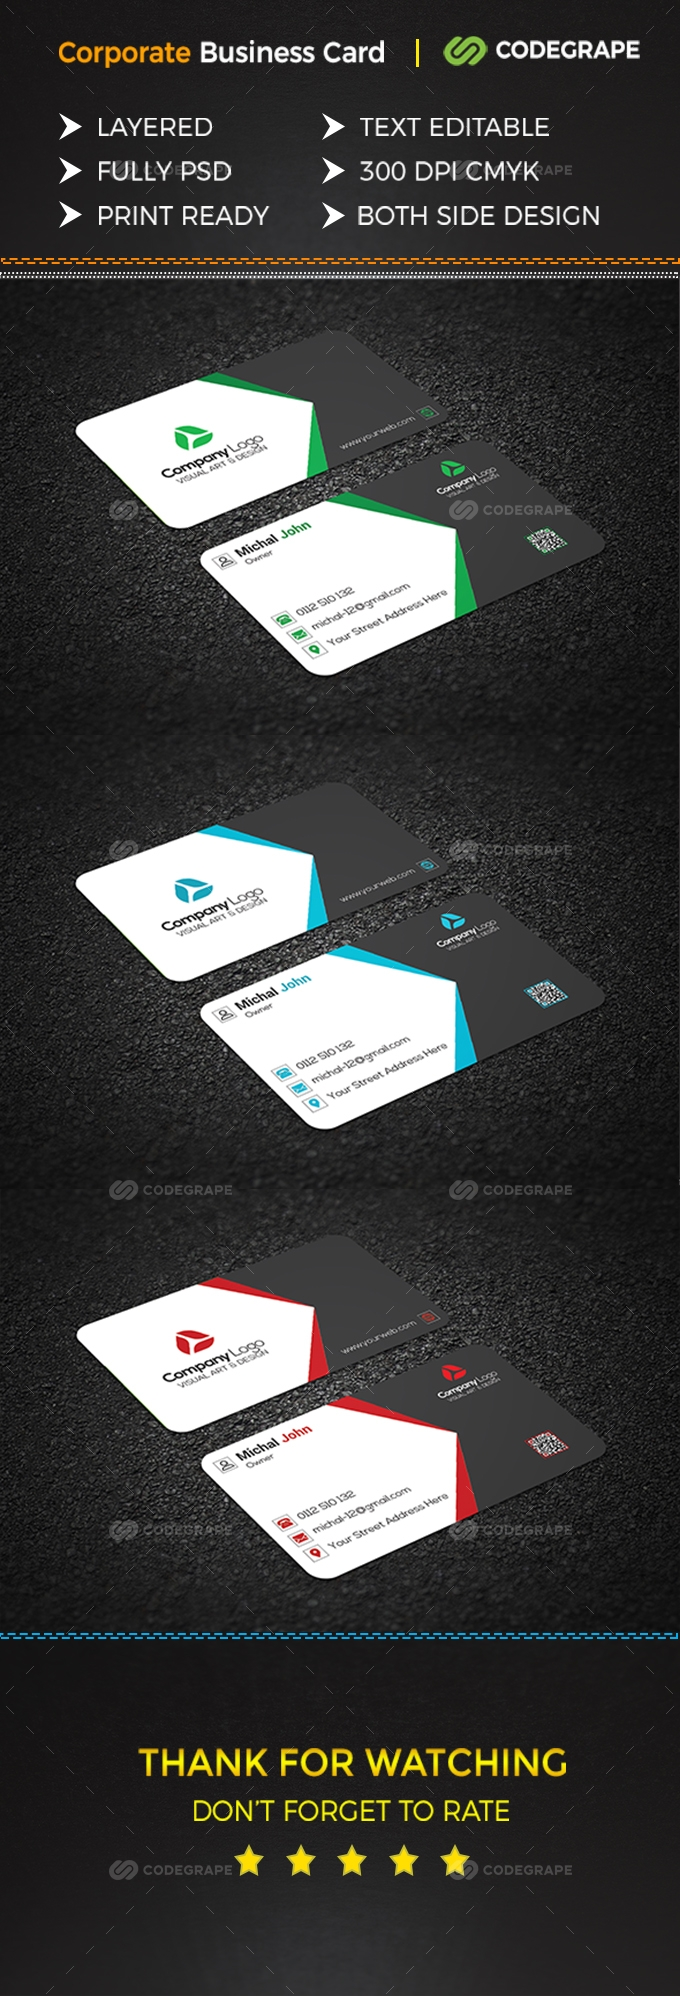 Smart Business Card - Print | CodeGrape